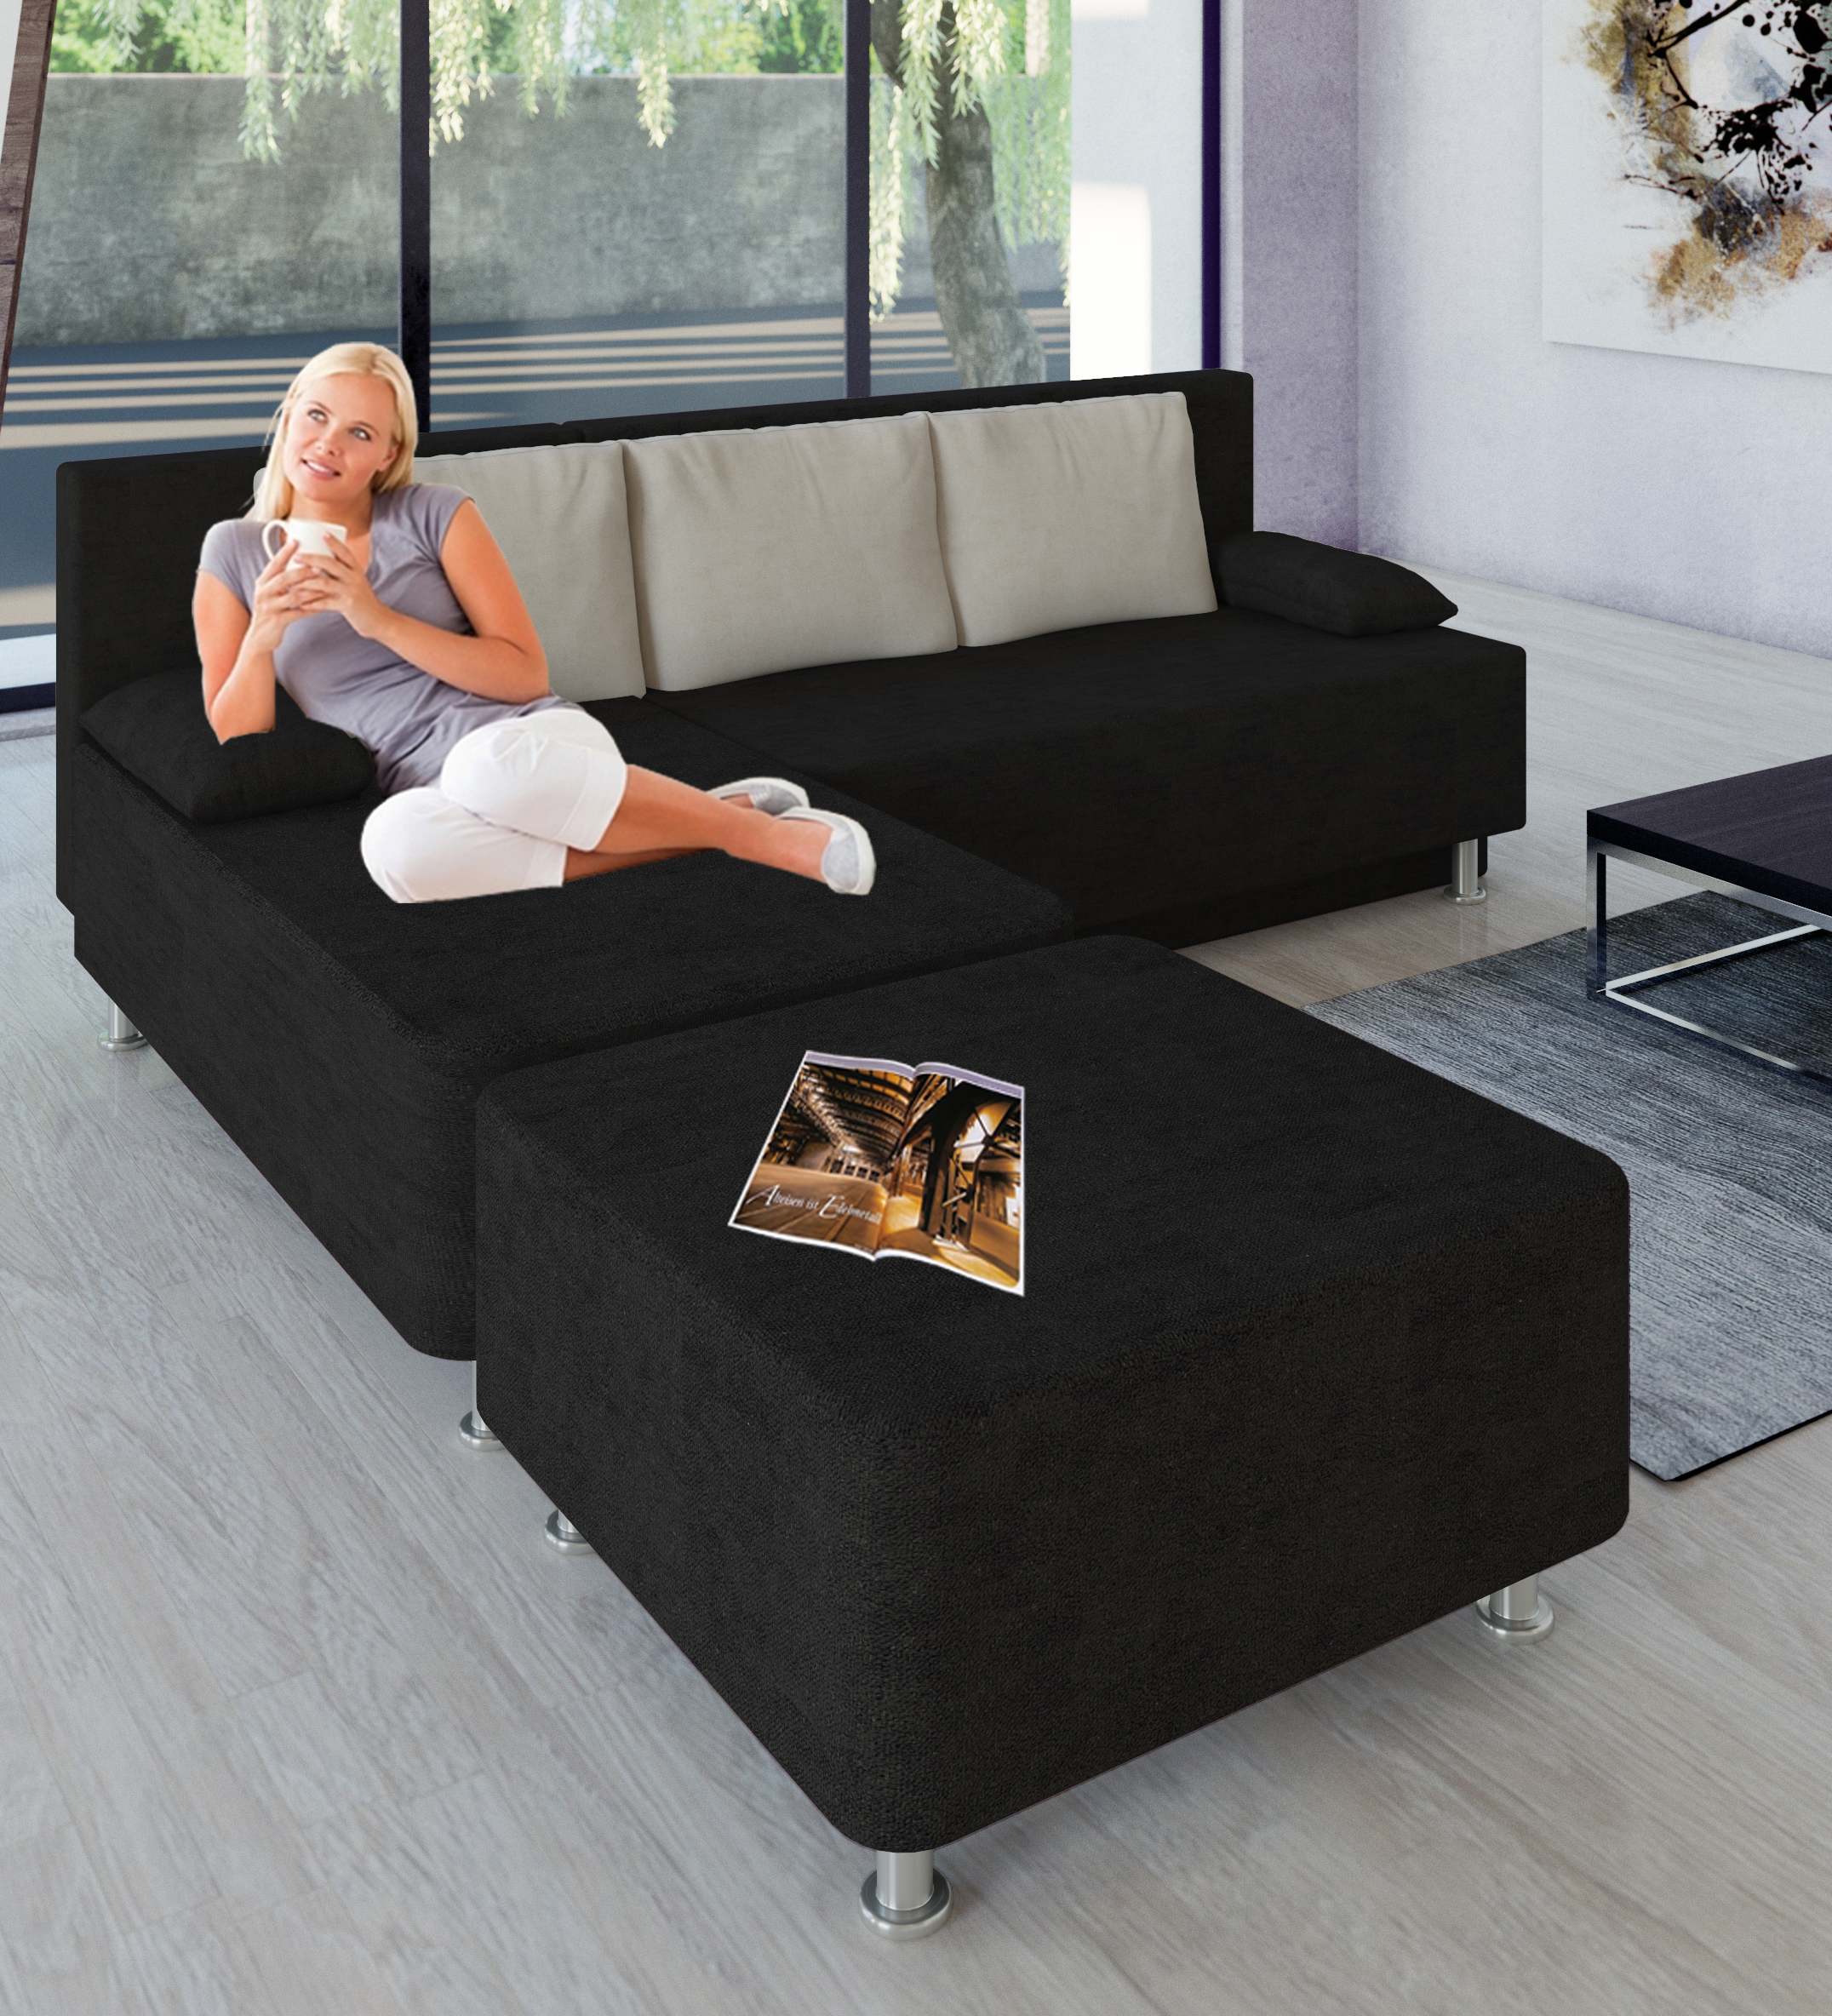 vcm gruppe vcm schlafsofa wohnlandschaft ecksofa couch. Black Bedroom Furniture Sets. Home Design Ideas